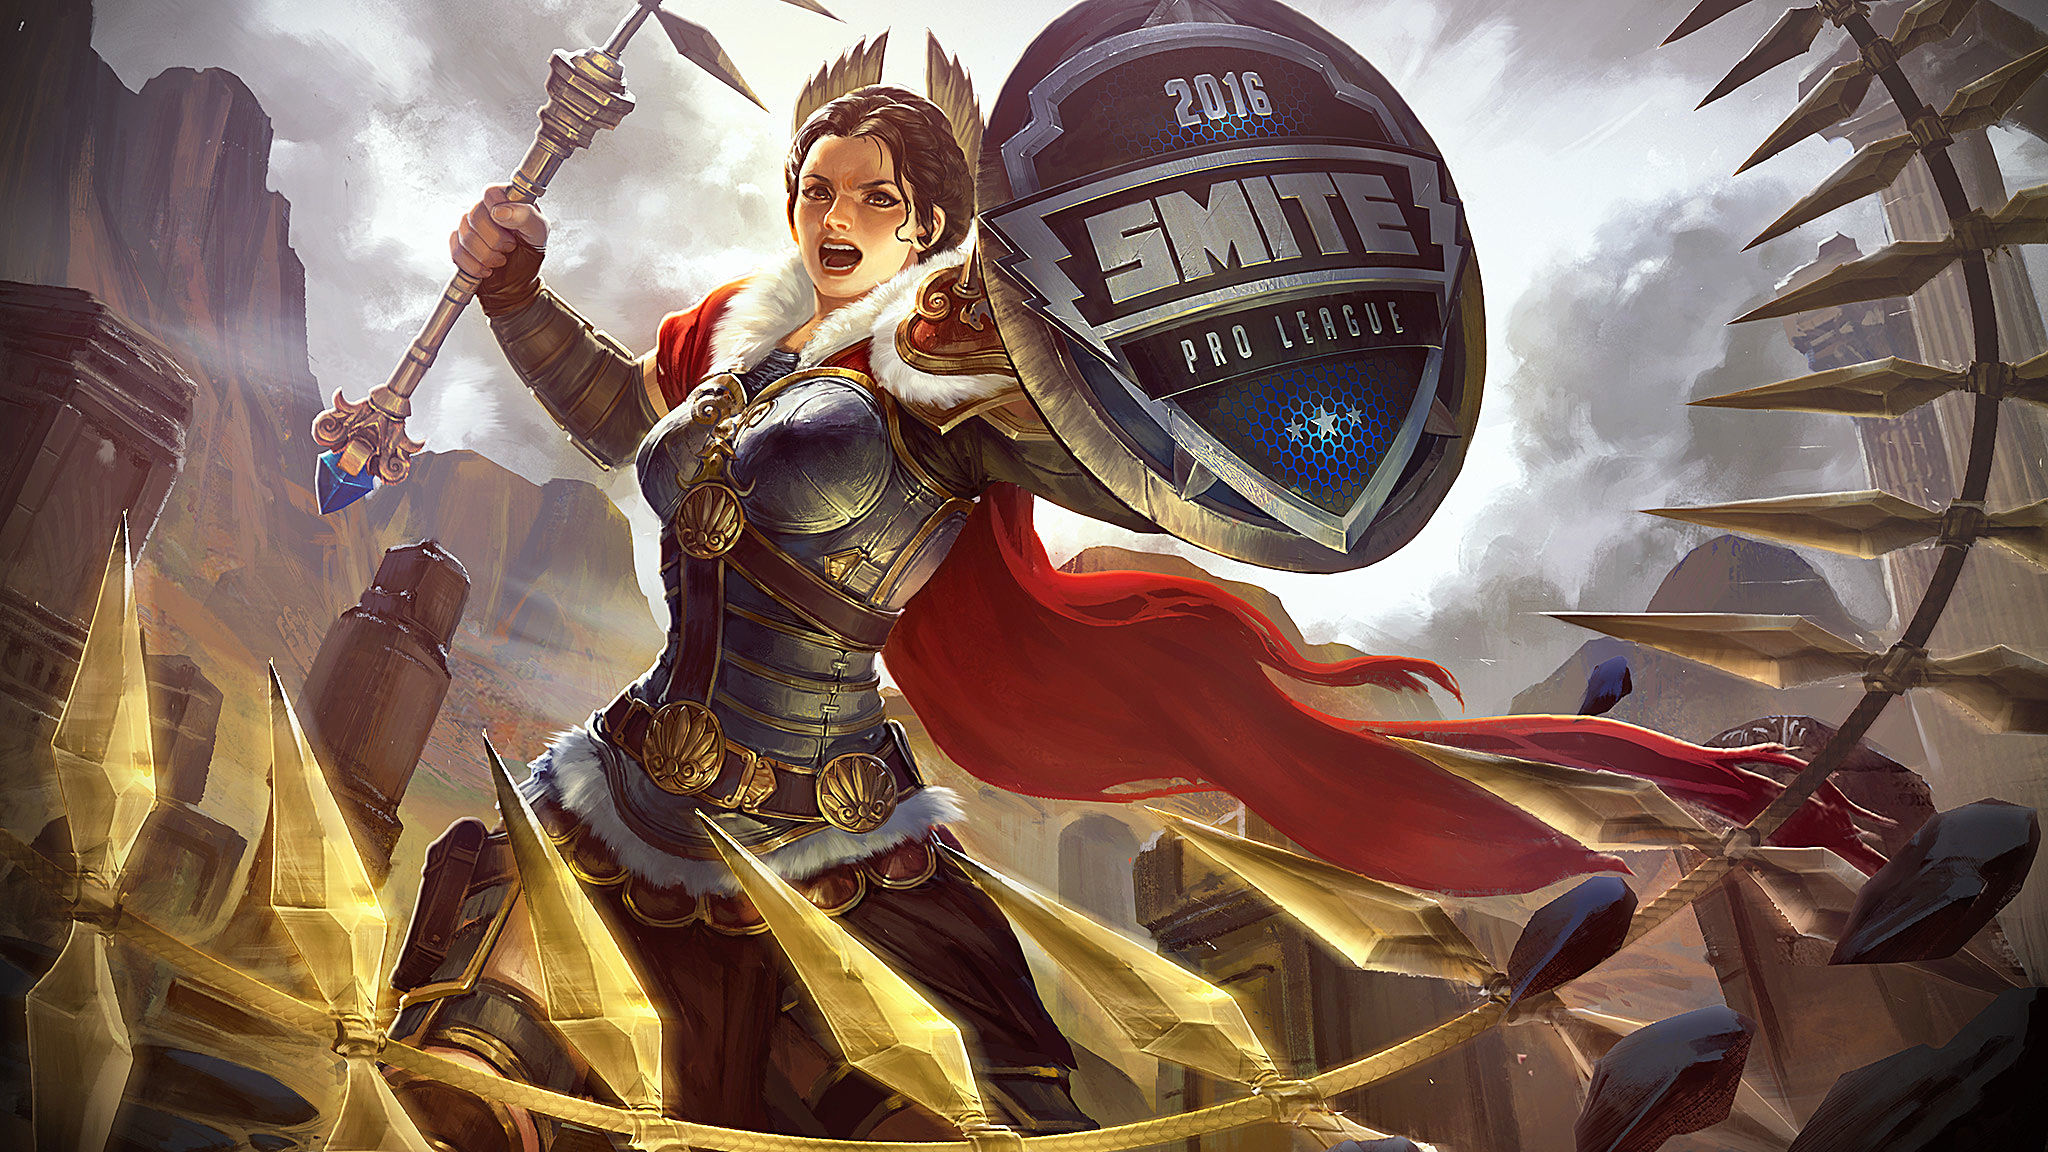 Bellona Smite Wallpaper Posted By Zoey Cunningham